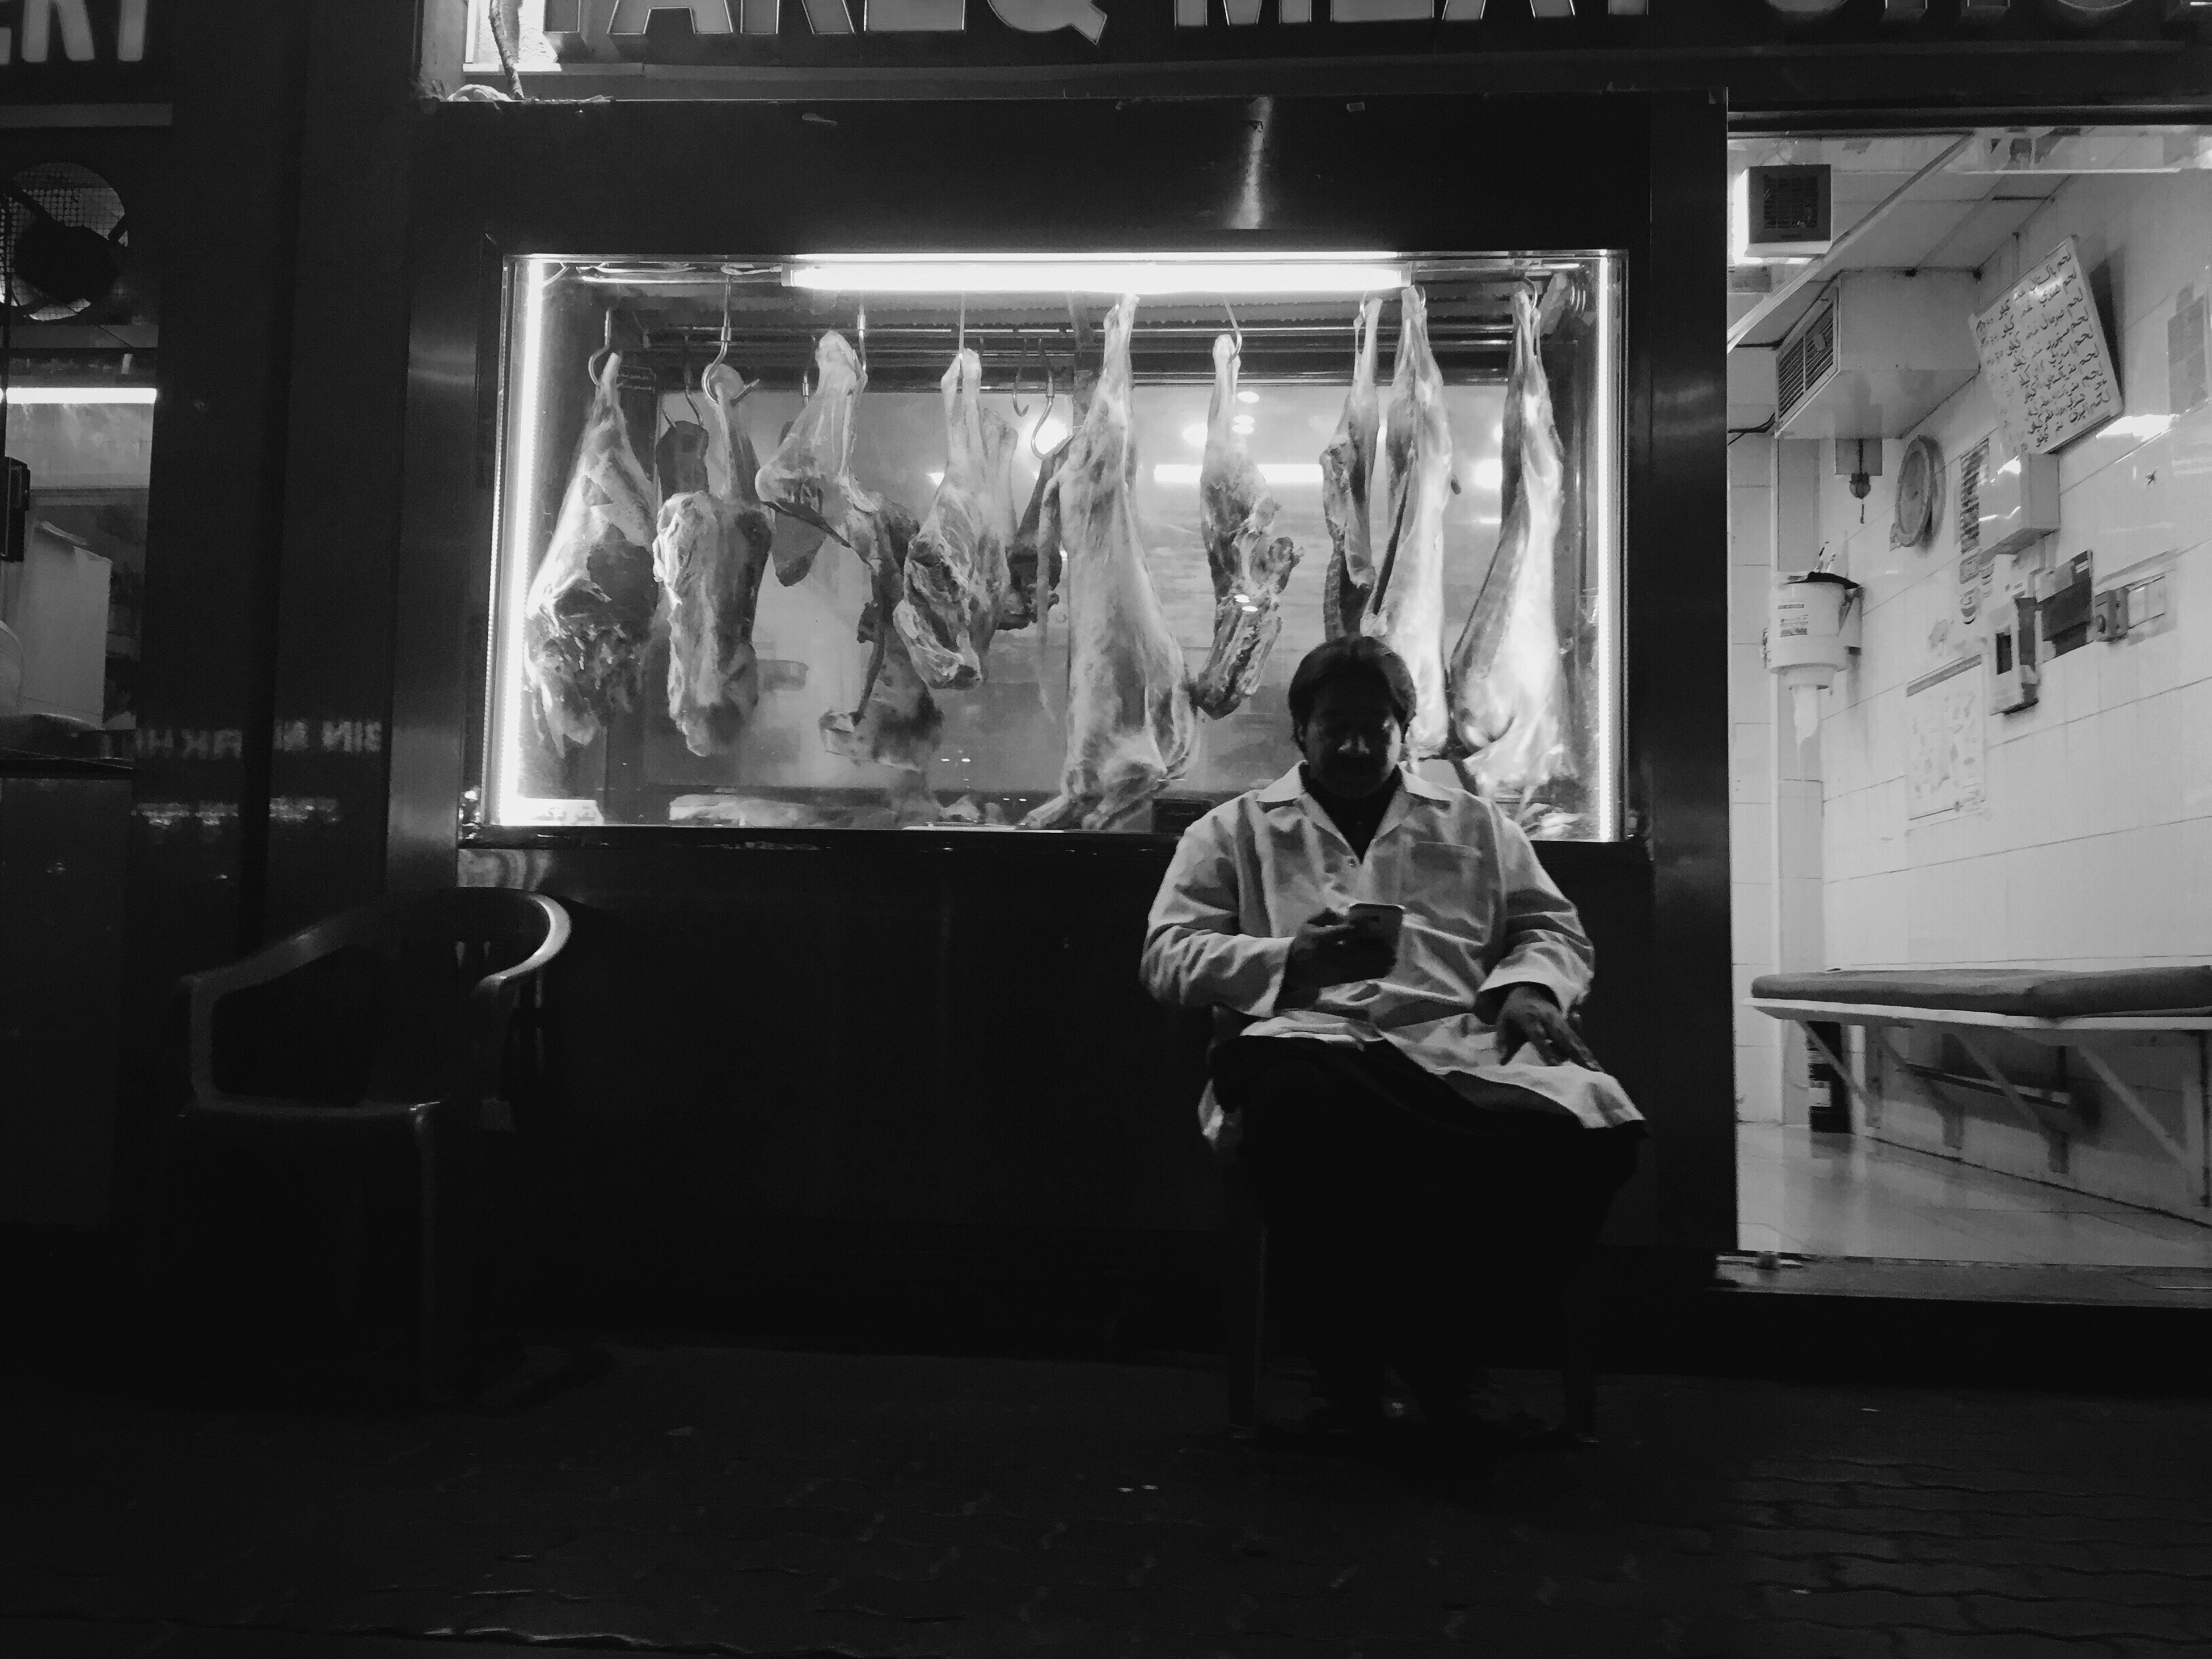 Streetphotography IPhoneography Mobilephotography Meatvendor Taking Photos Blackandwhite